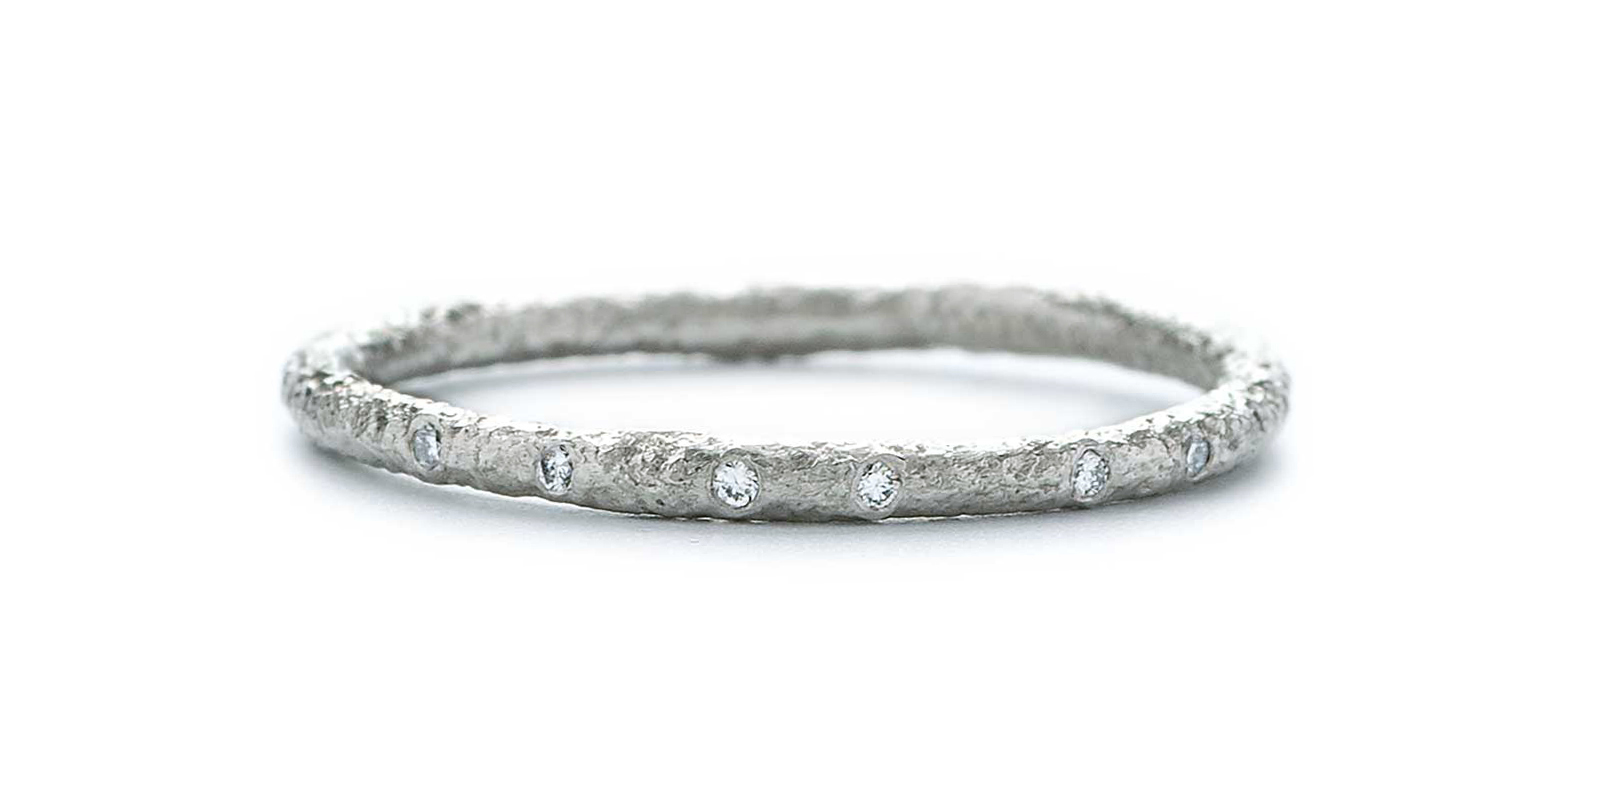 Scattered Eternity Ring – White Diamond, Platinum 950